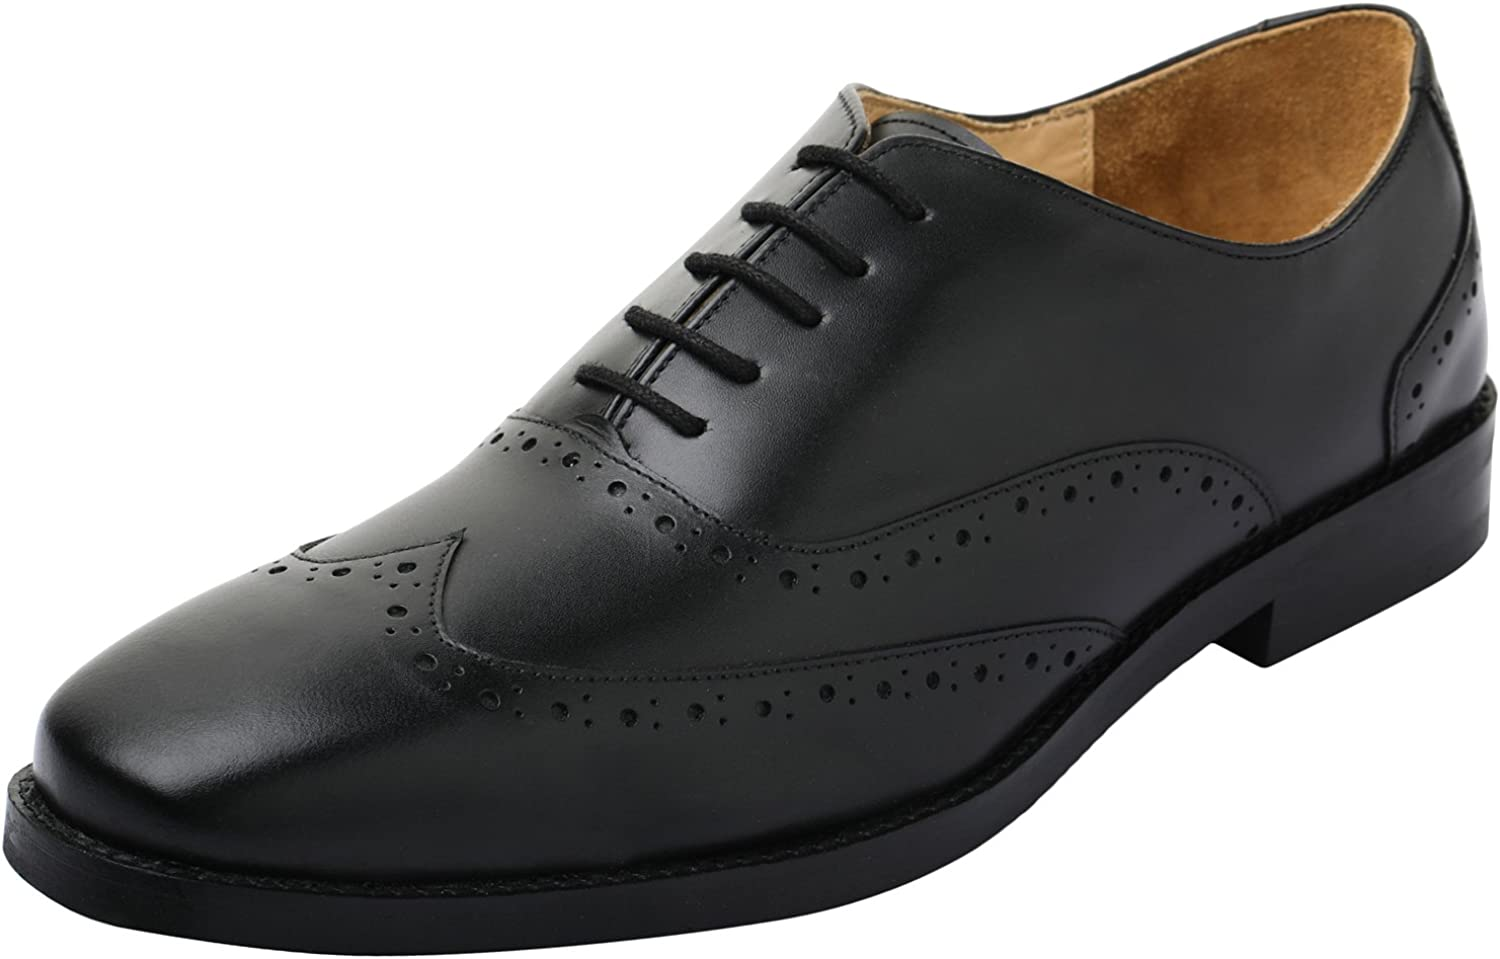 Lethato Handcrafted Men's Captoe Genuine Leather Lace Oxford Dress shoes